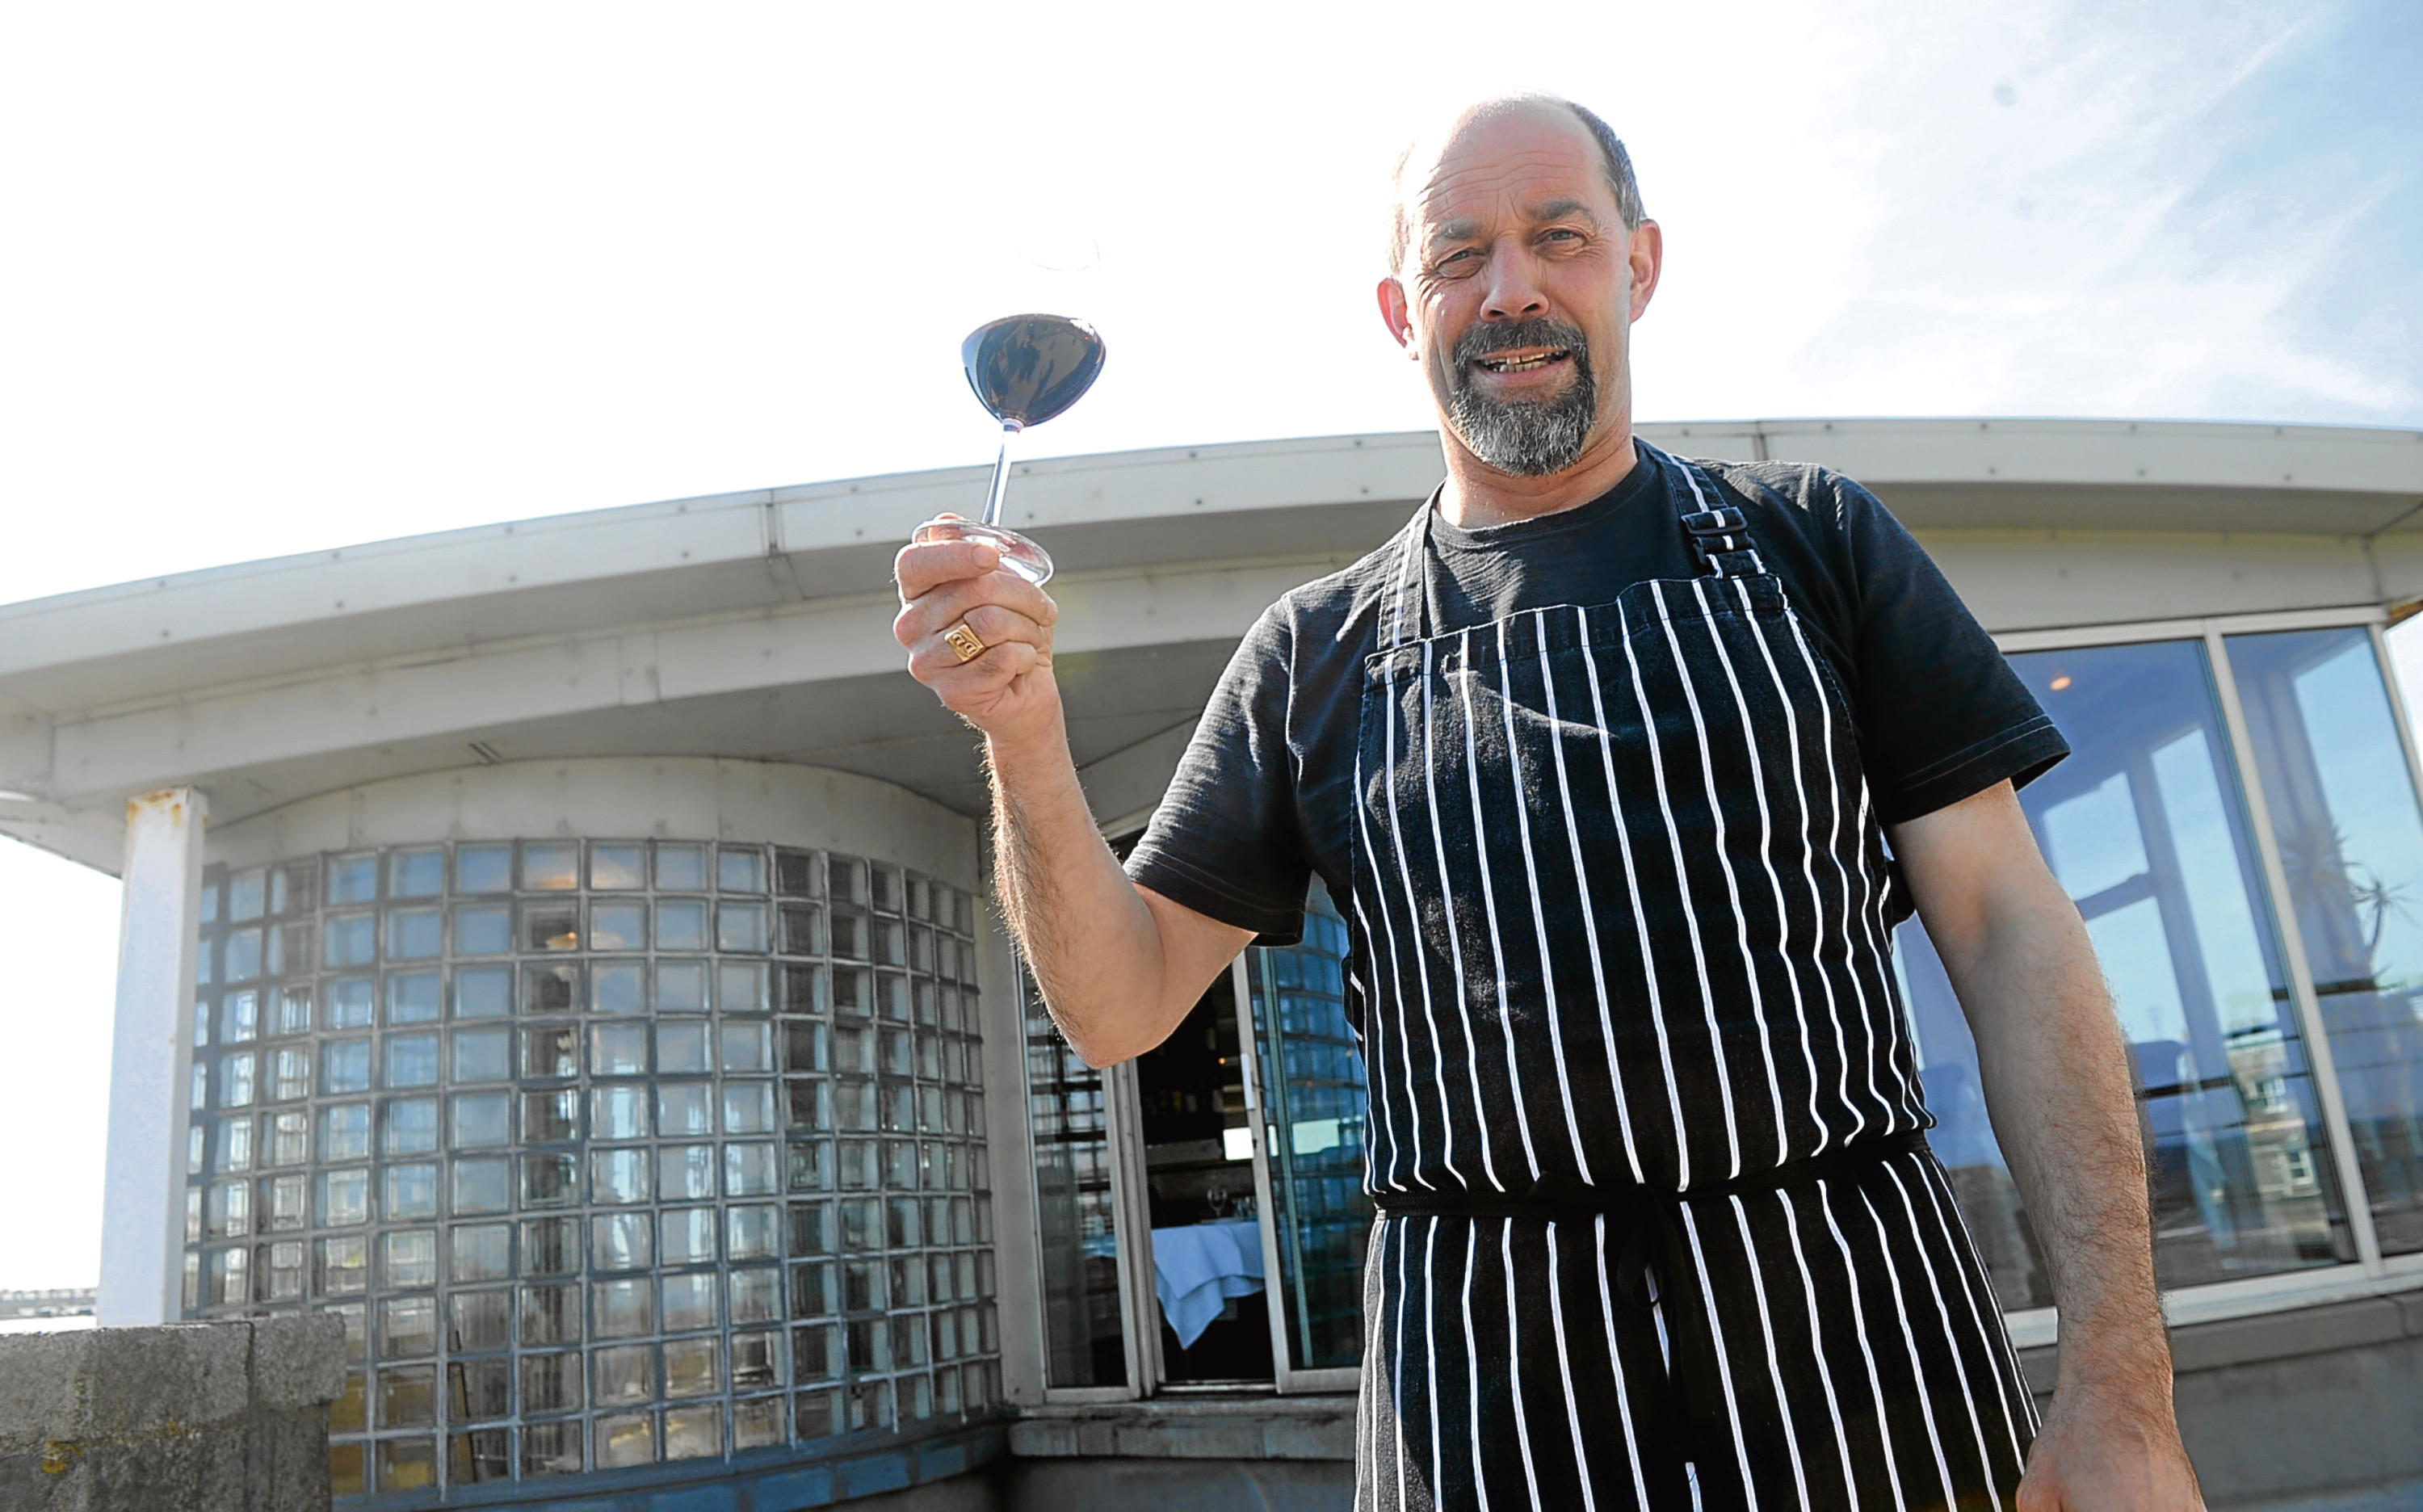 The Silver Darling's owner and chef Didier Dejean